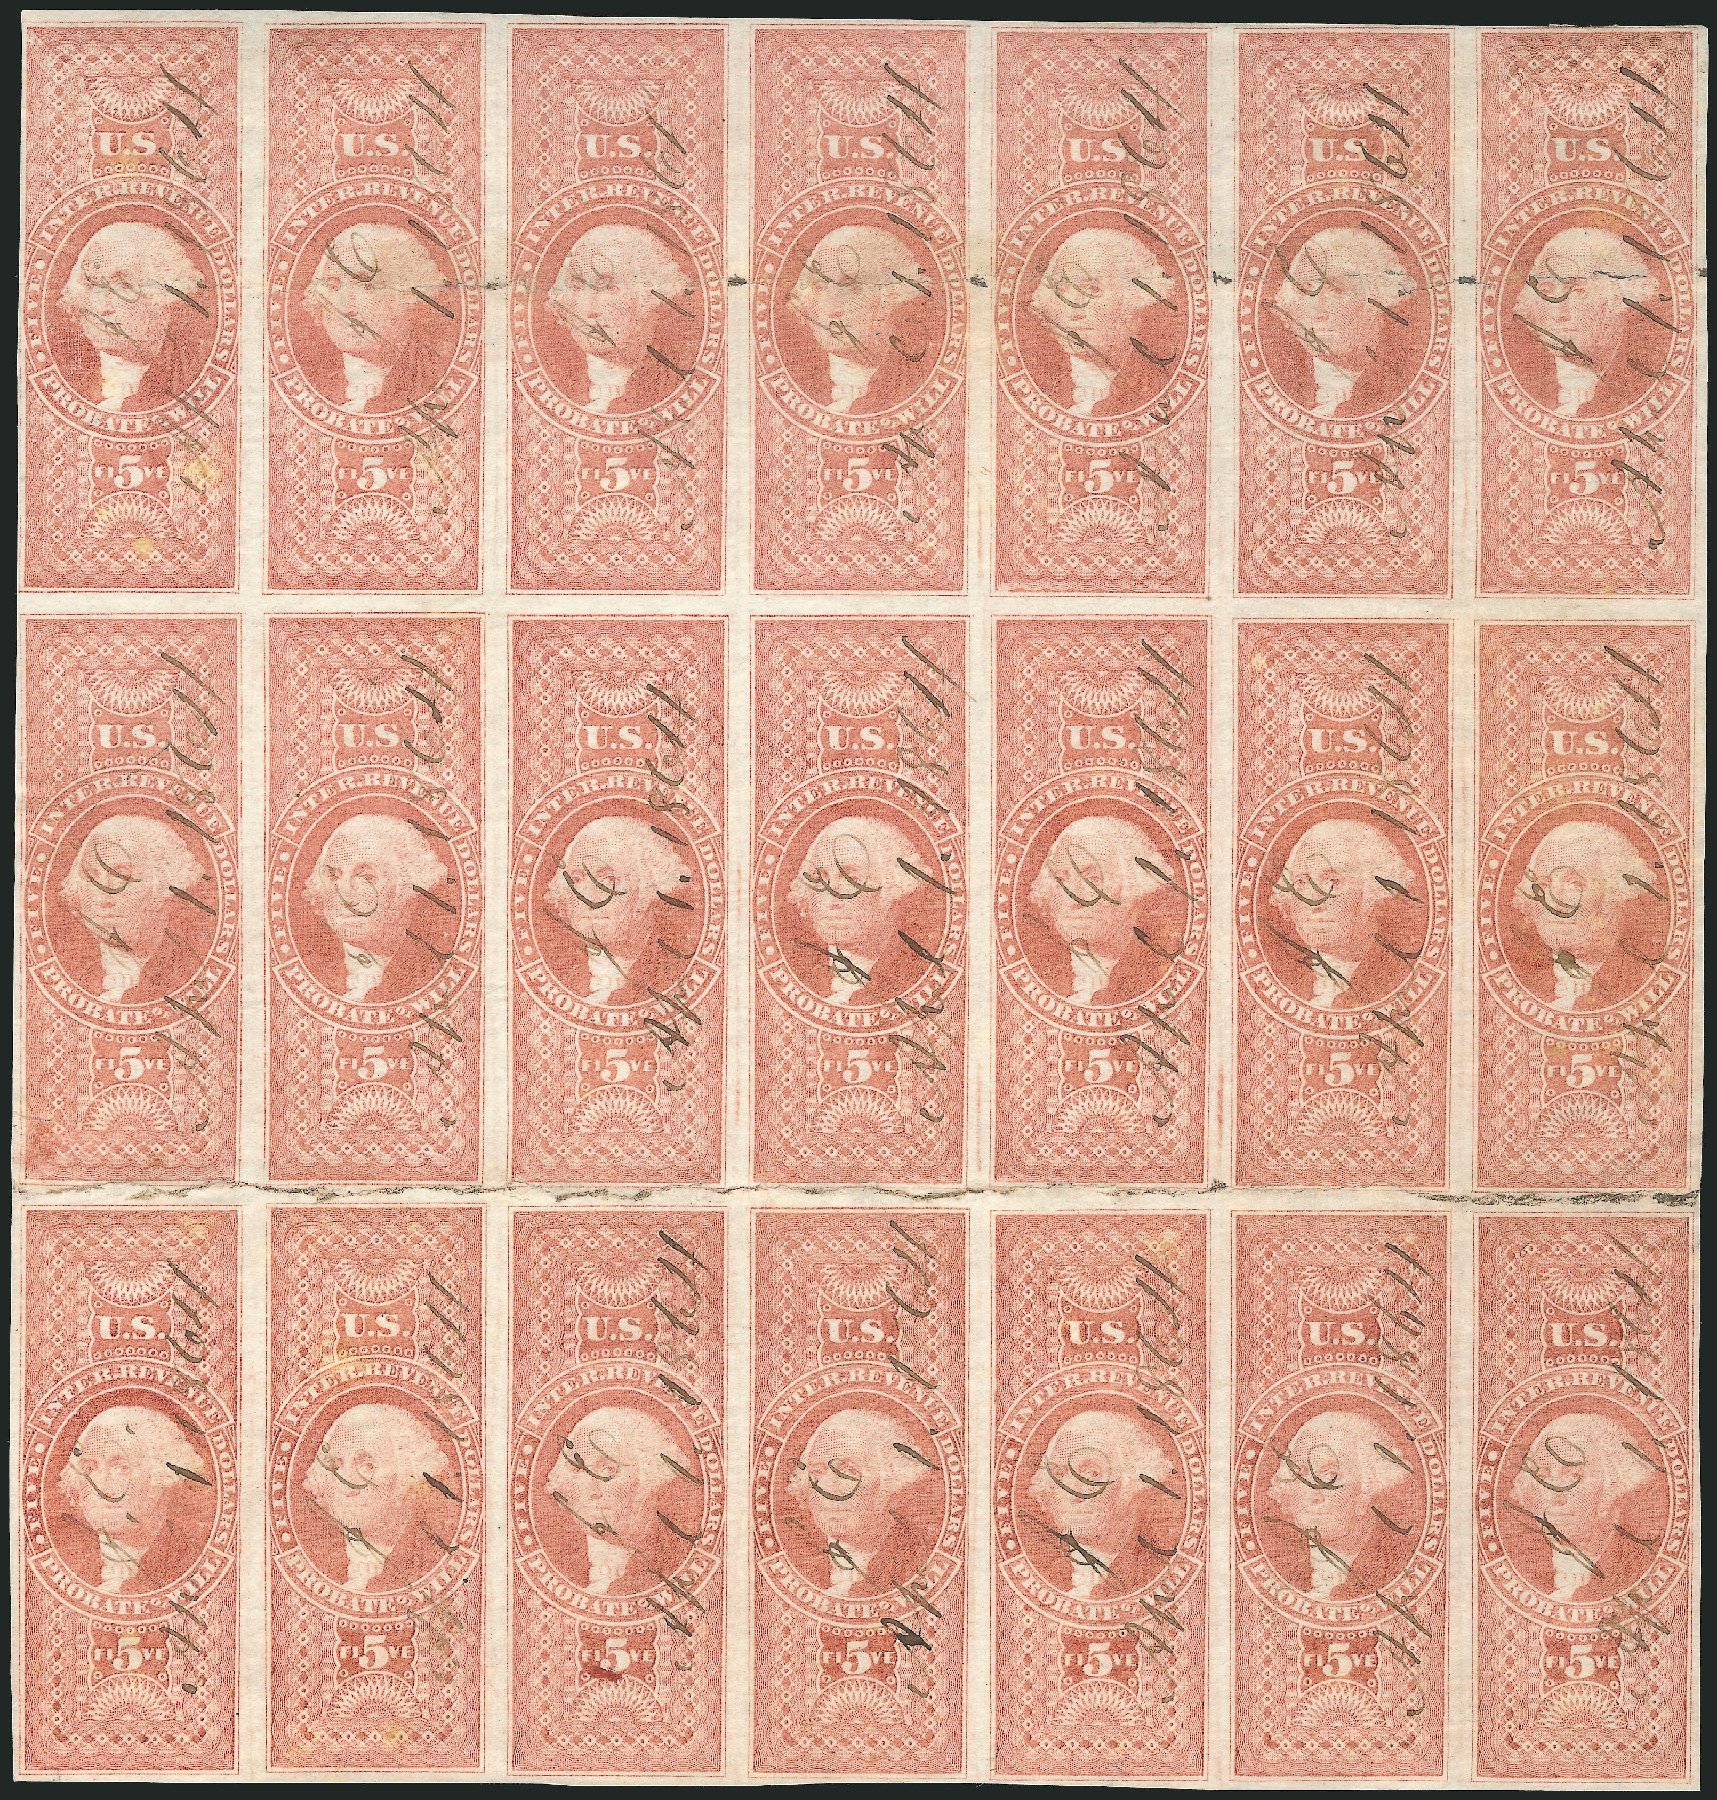 Value of US Stamp Scott #R92 - US$5.00 1862 Revenue Probate of Will. Robert Siegel Auction Galleries, Dec 2014, Sale 1089, Lot 373